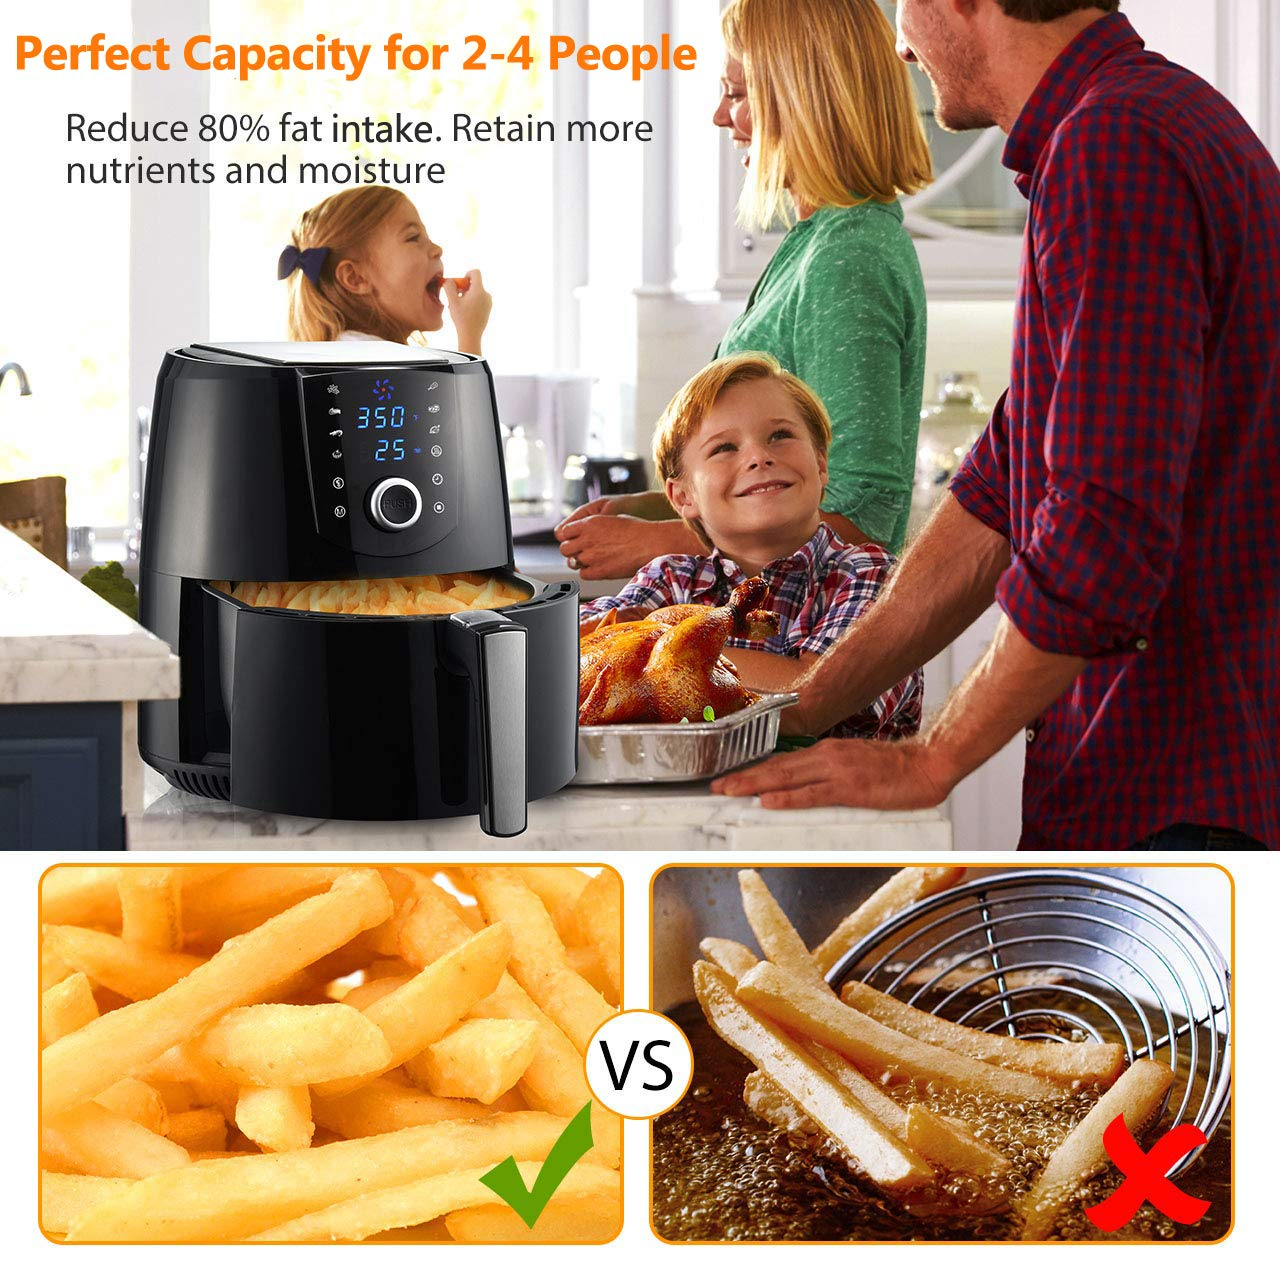 OMORC 3.7QT Air Fryer L Compact Size ME176 , Hot Air Fryer Oven For 2-4 People , Oilless Air Fryer w Quick Knob Touch Screen, Air Cooker w 8-15 Presets, Keep Warm, Dishwasher Safe, Recipe, 1400W